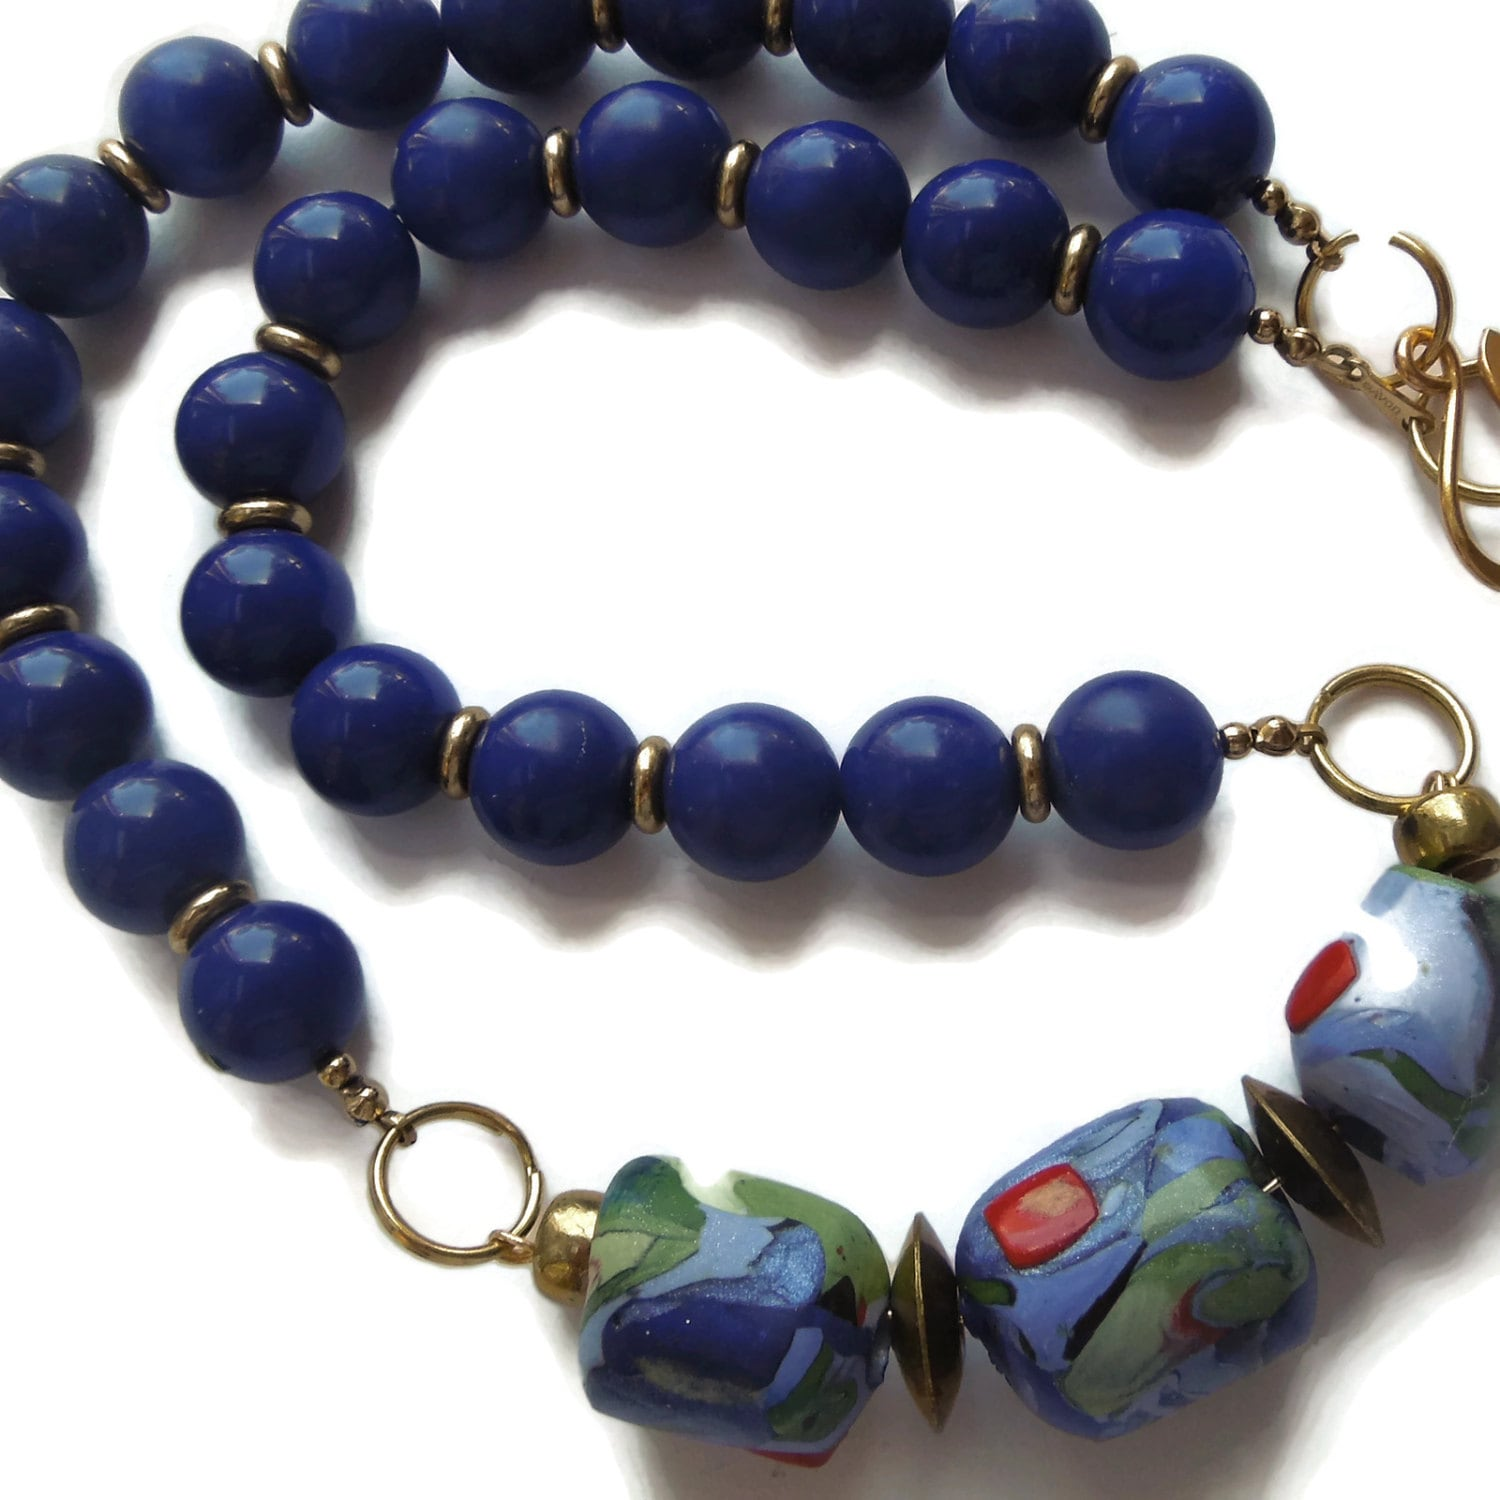 necklace pearl p magnetic nk blue ended versatile quick crystal bead view open